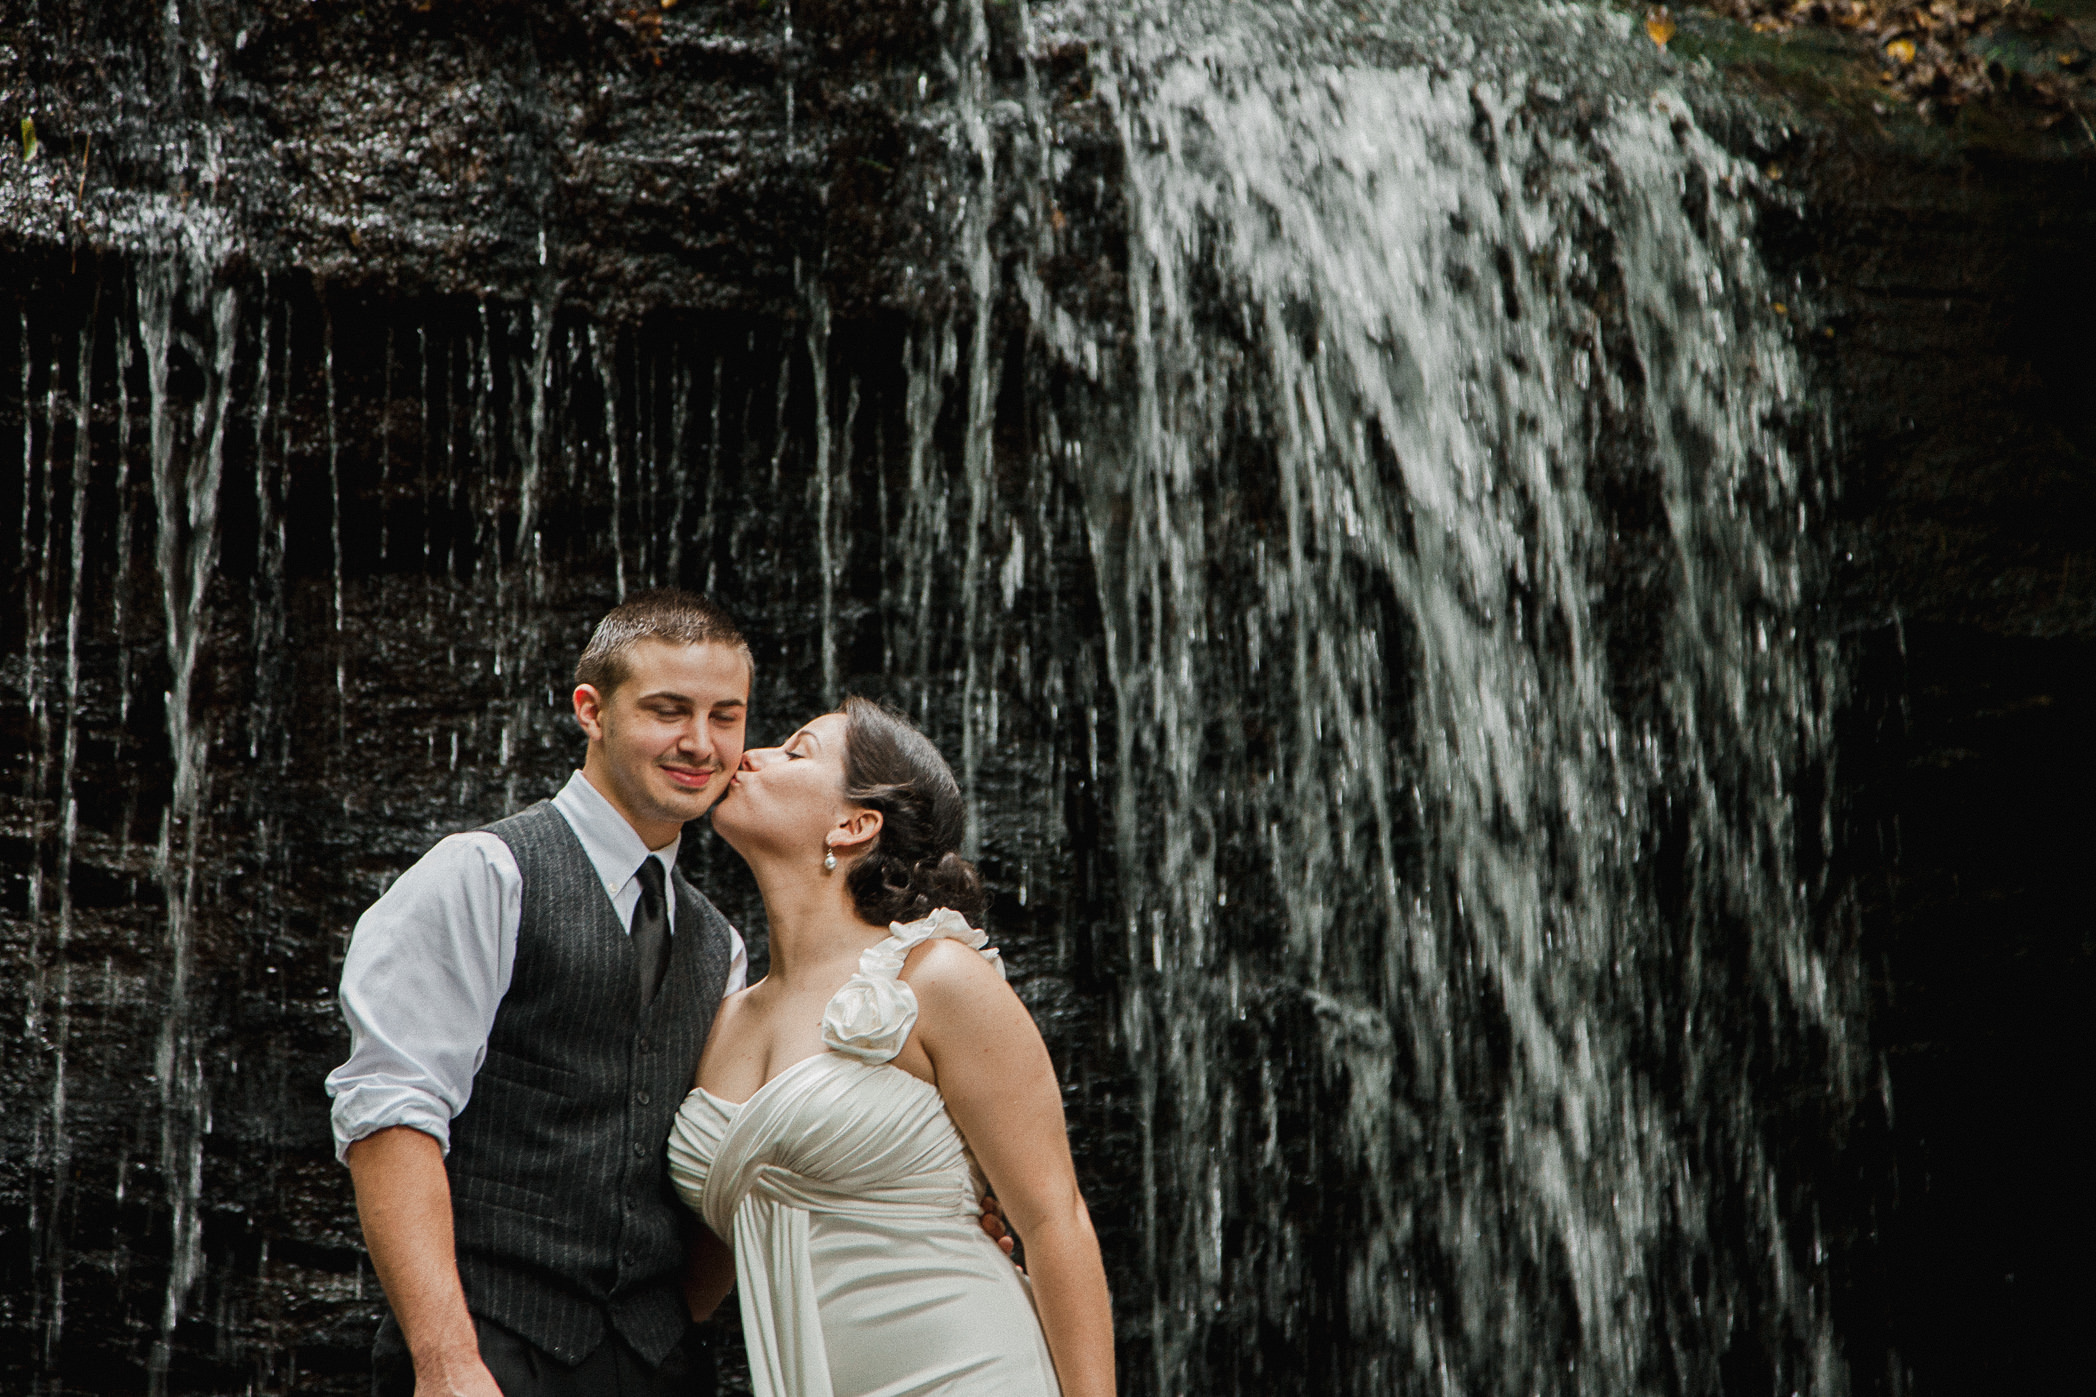 wildcat_falls_wedding (32 of 36).jpg